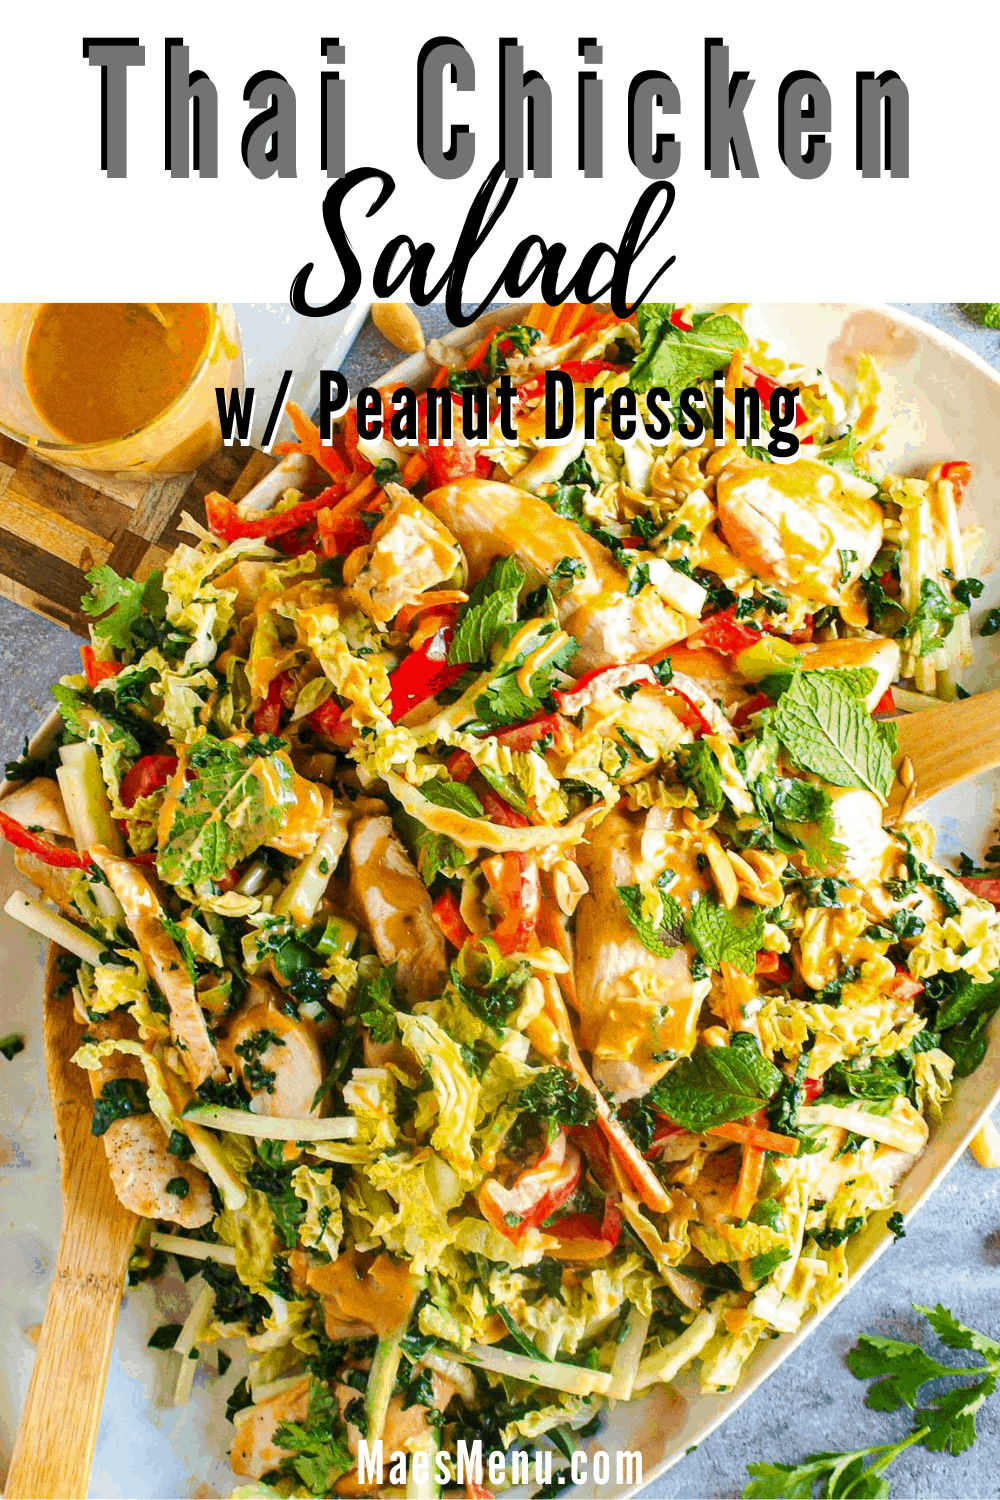 A pinterest pin for thai chicken salad with peanut dressing. The shot is an overhead picture of a large platter of the chopped salad.